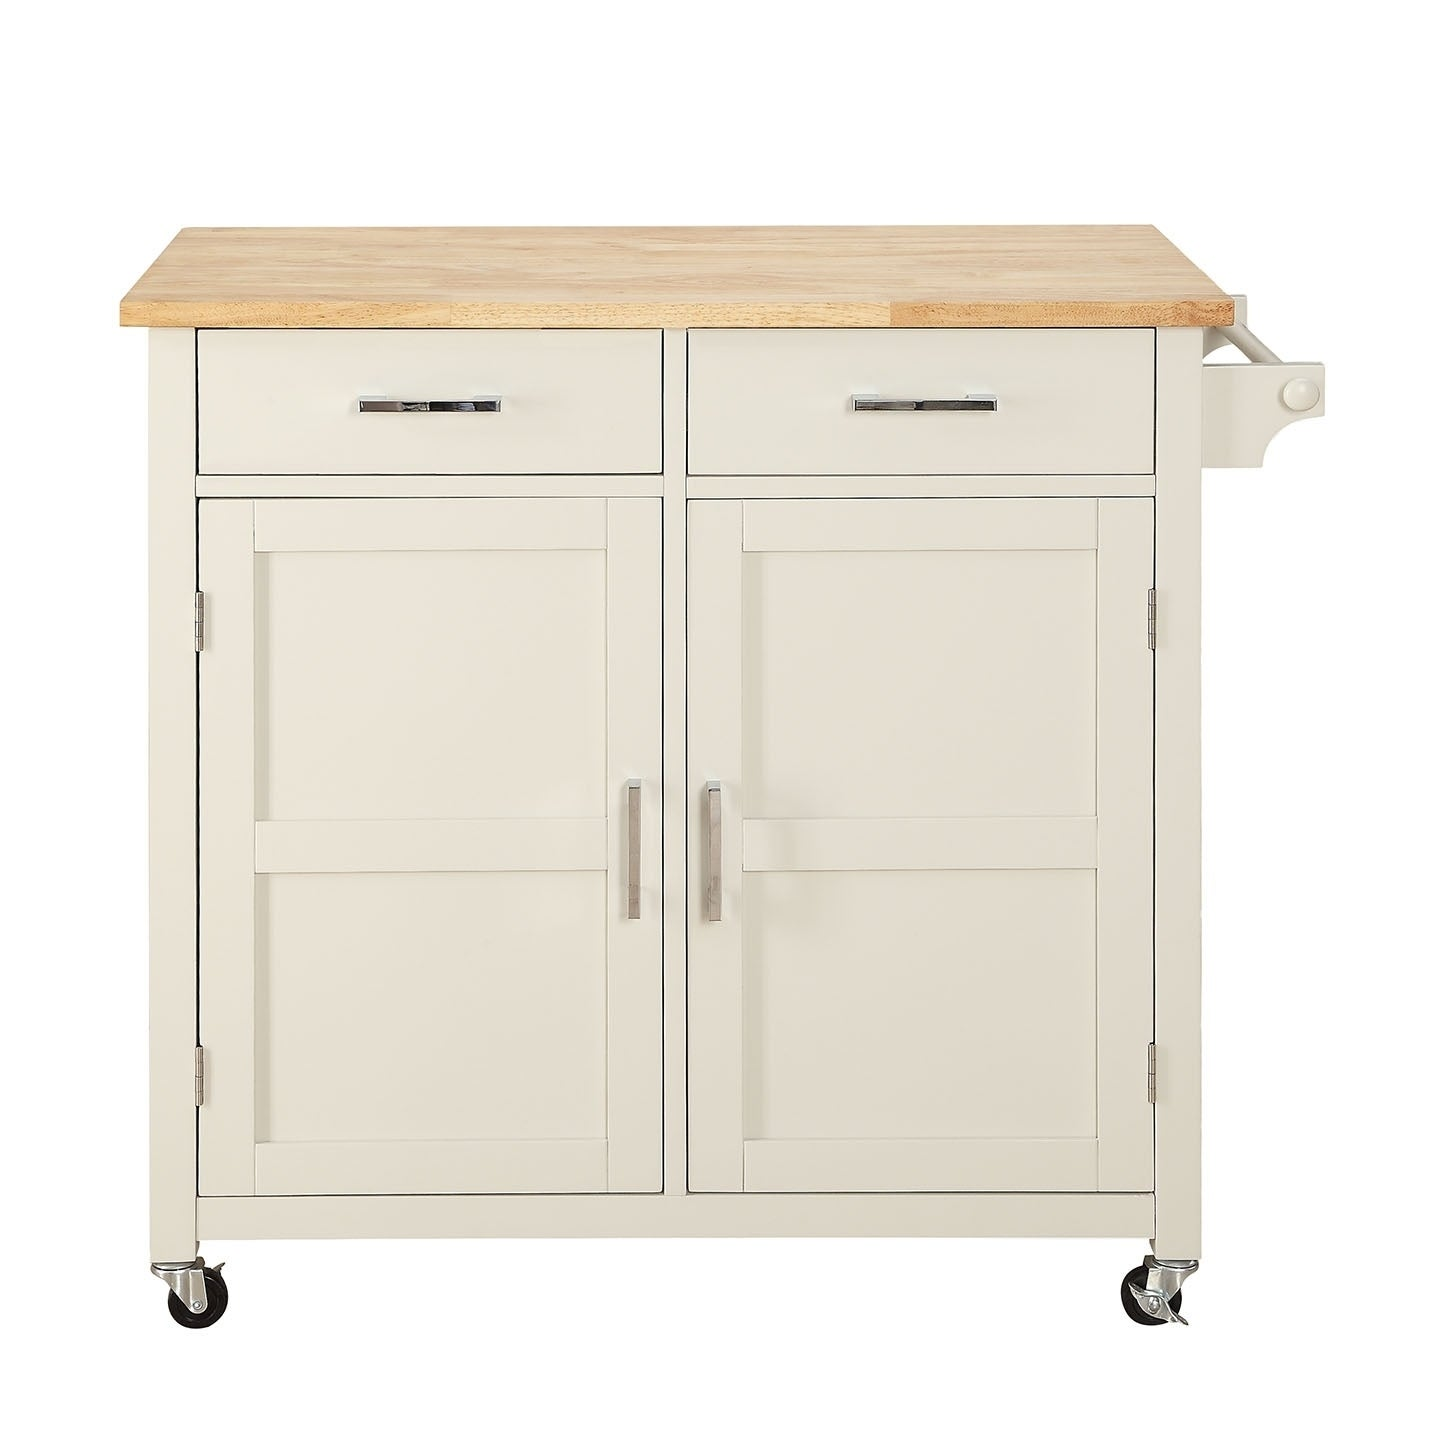 Shop macie solid wood small kitchen cart free shipping today overstock com 19897294